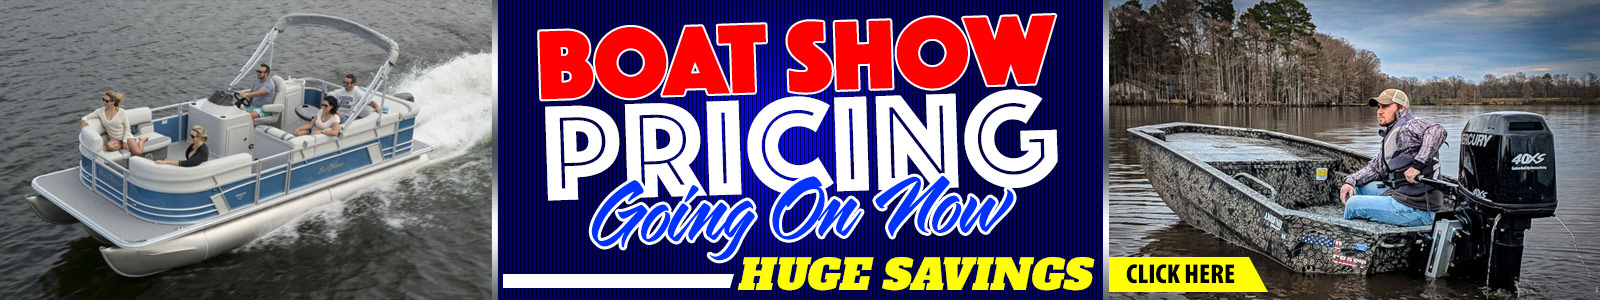 Boat Show Pricing